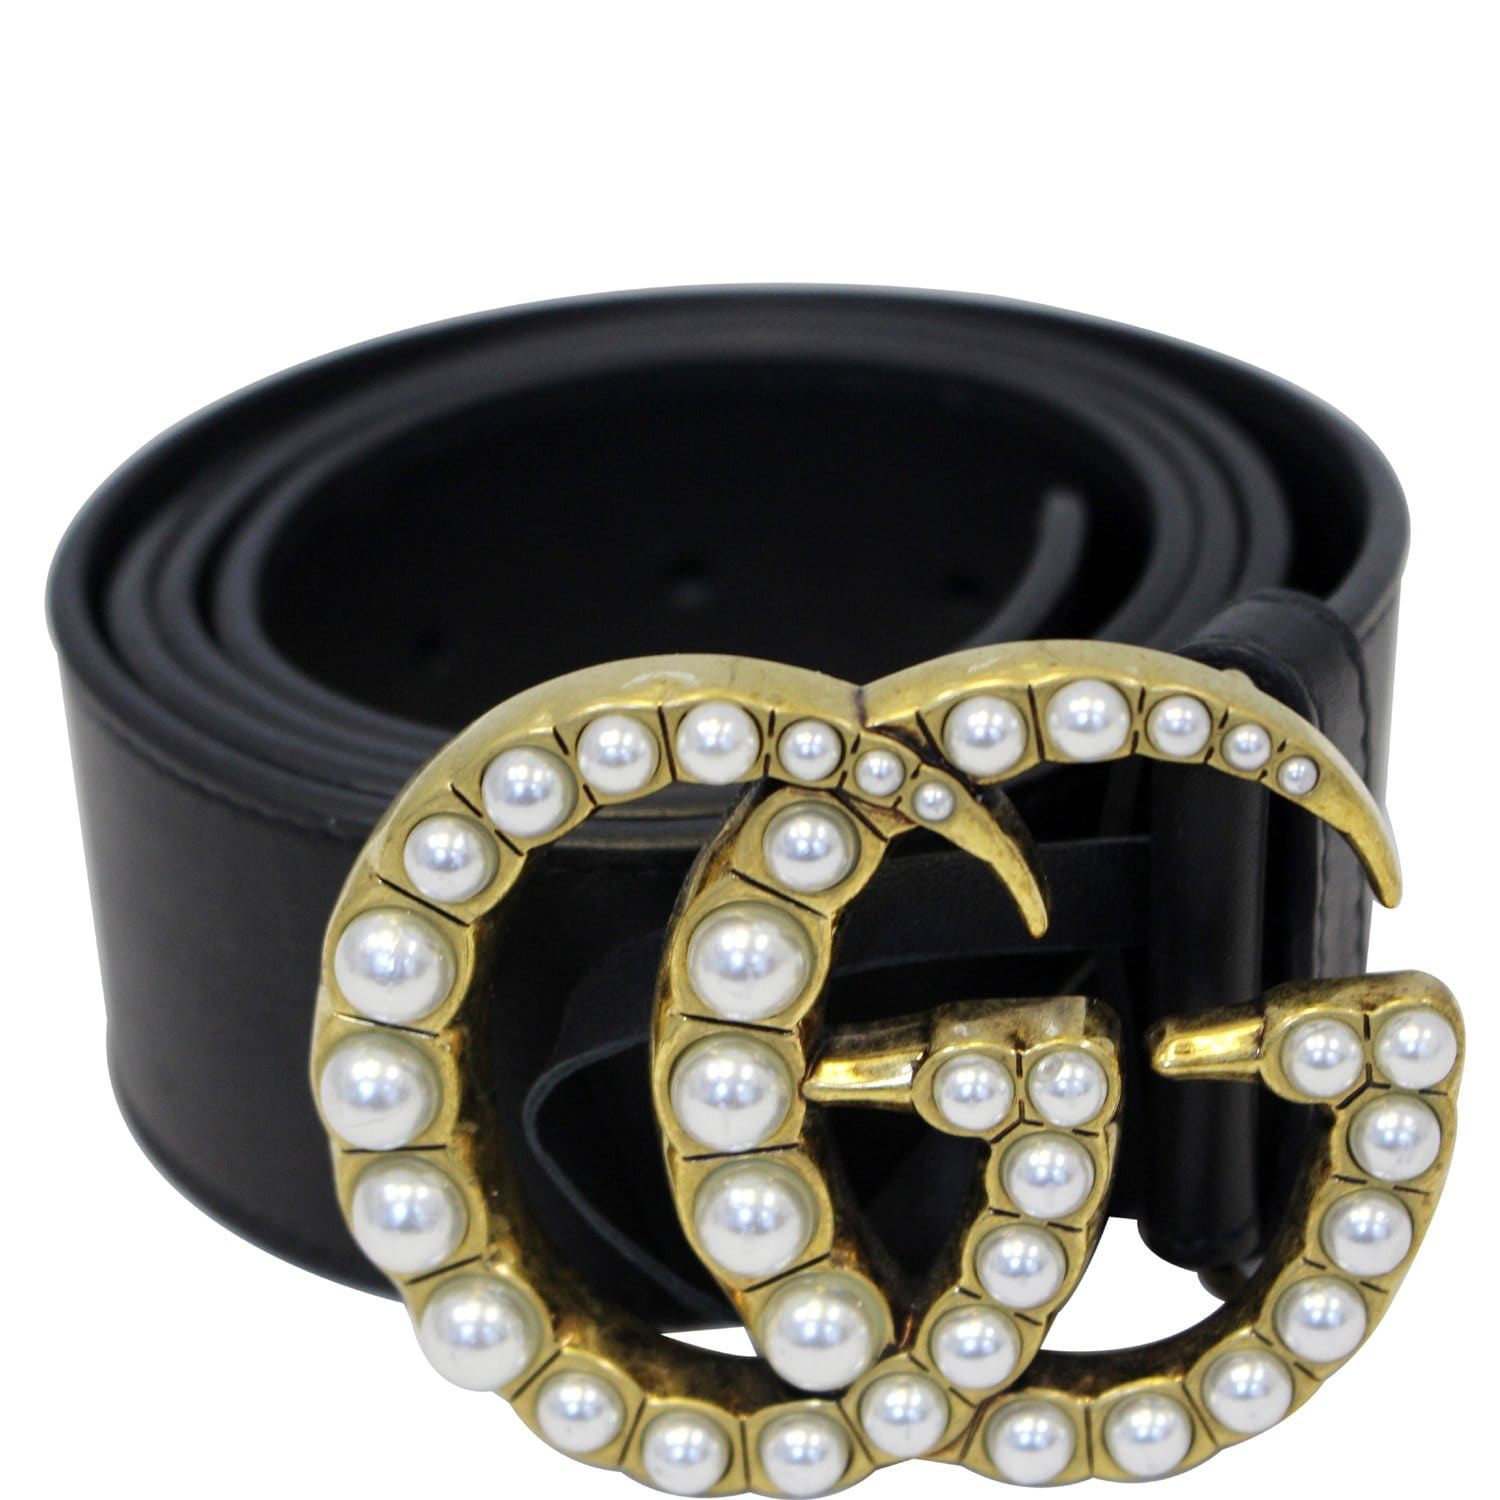 cd35a565b8a GUCCI Pearl Double G Black Leather Belt Size 44-US